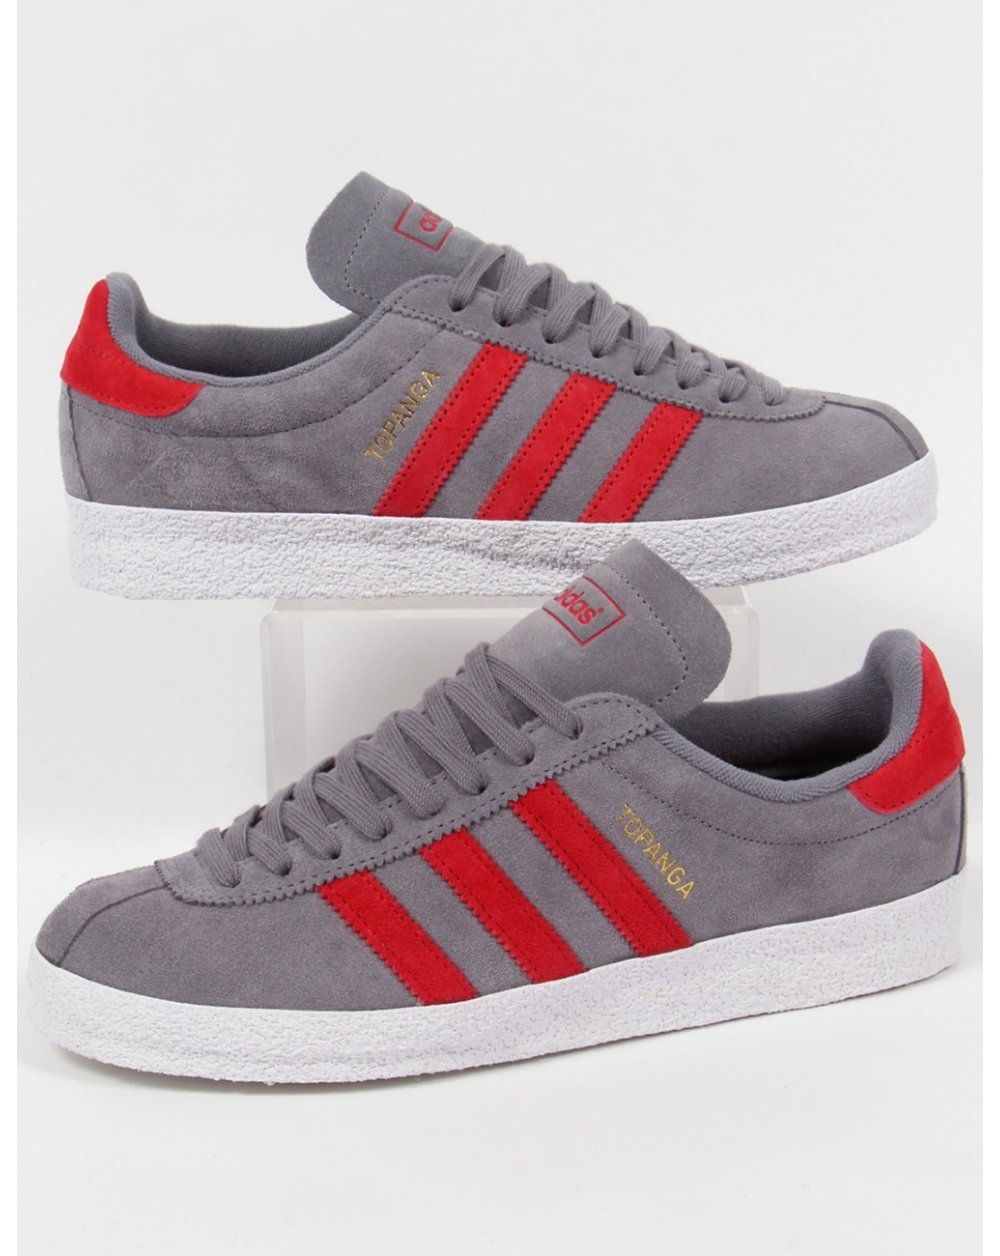 b00d3763a77 adidas Trainers Adidas Topanga Trainers Grey red white